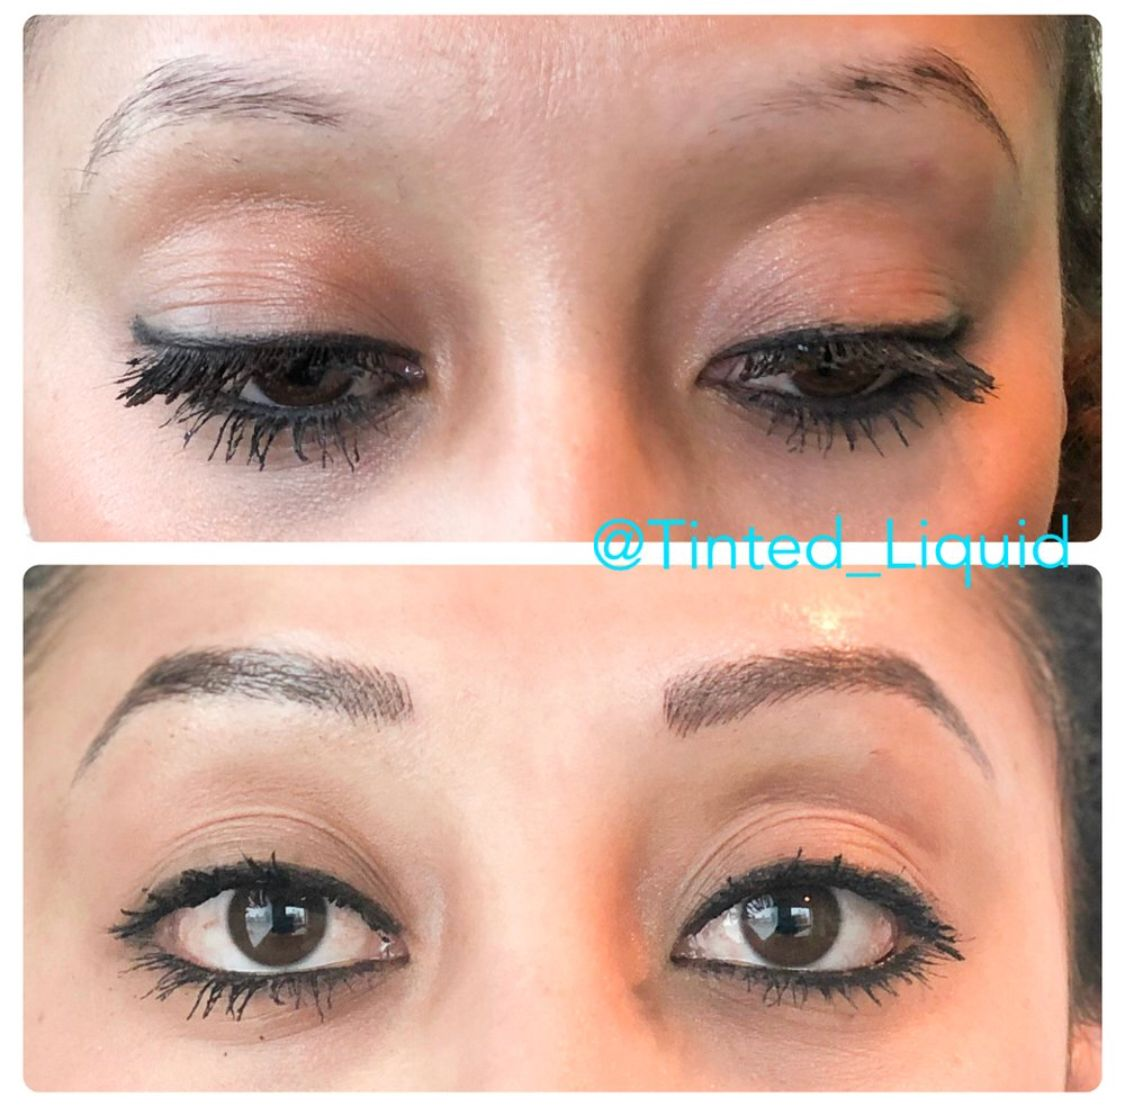 Before and after combination of microblading strokes and